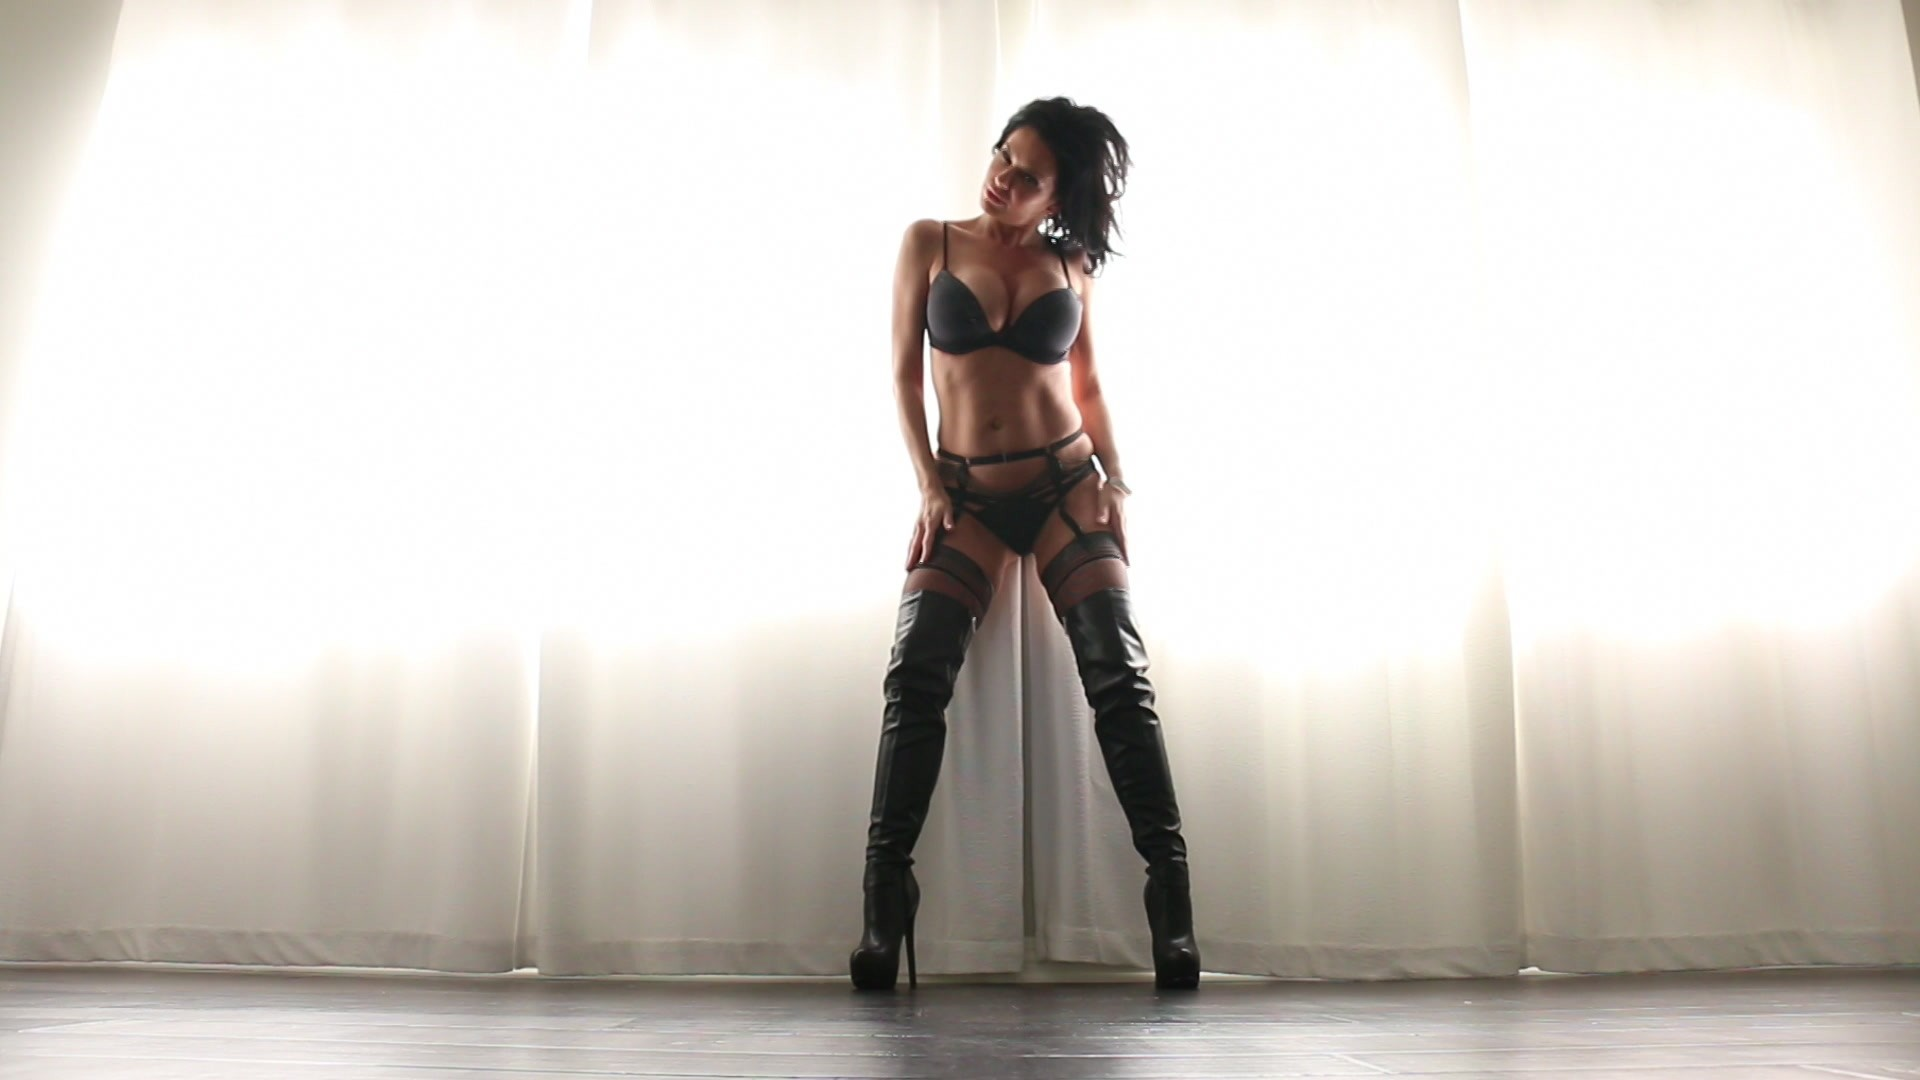 Scene with Veronica Avluv - image 5 out of 20